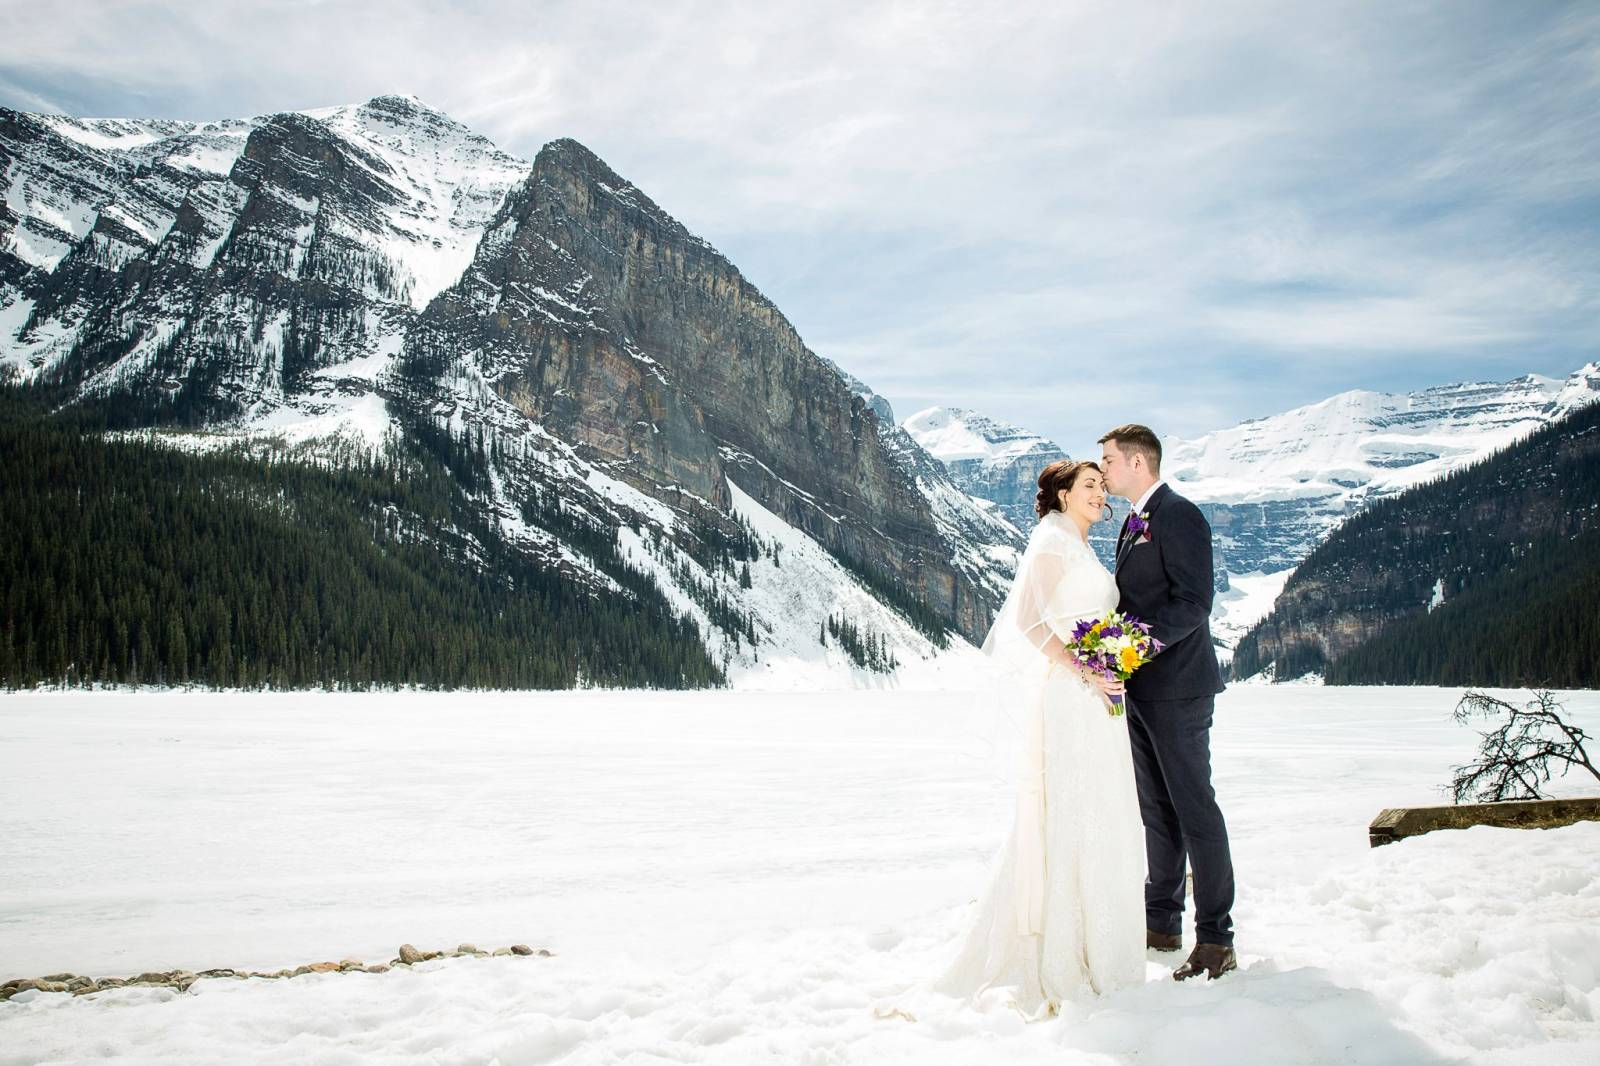 Lake Louise Wedding | Spring Elopement In Lake Louise Lake Louise Wedding Photography